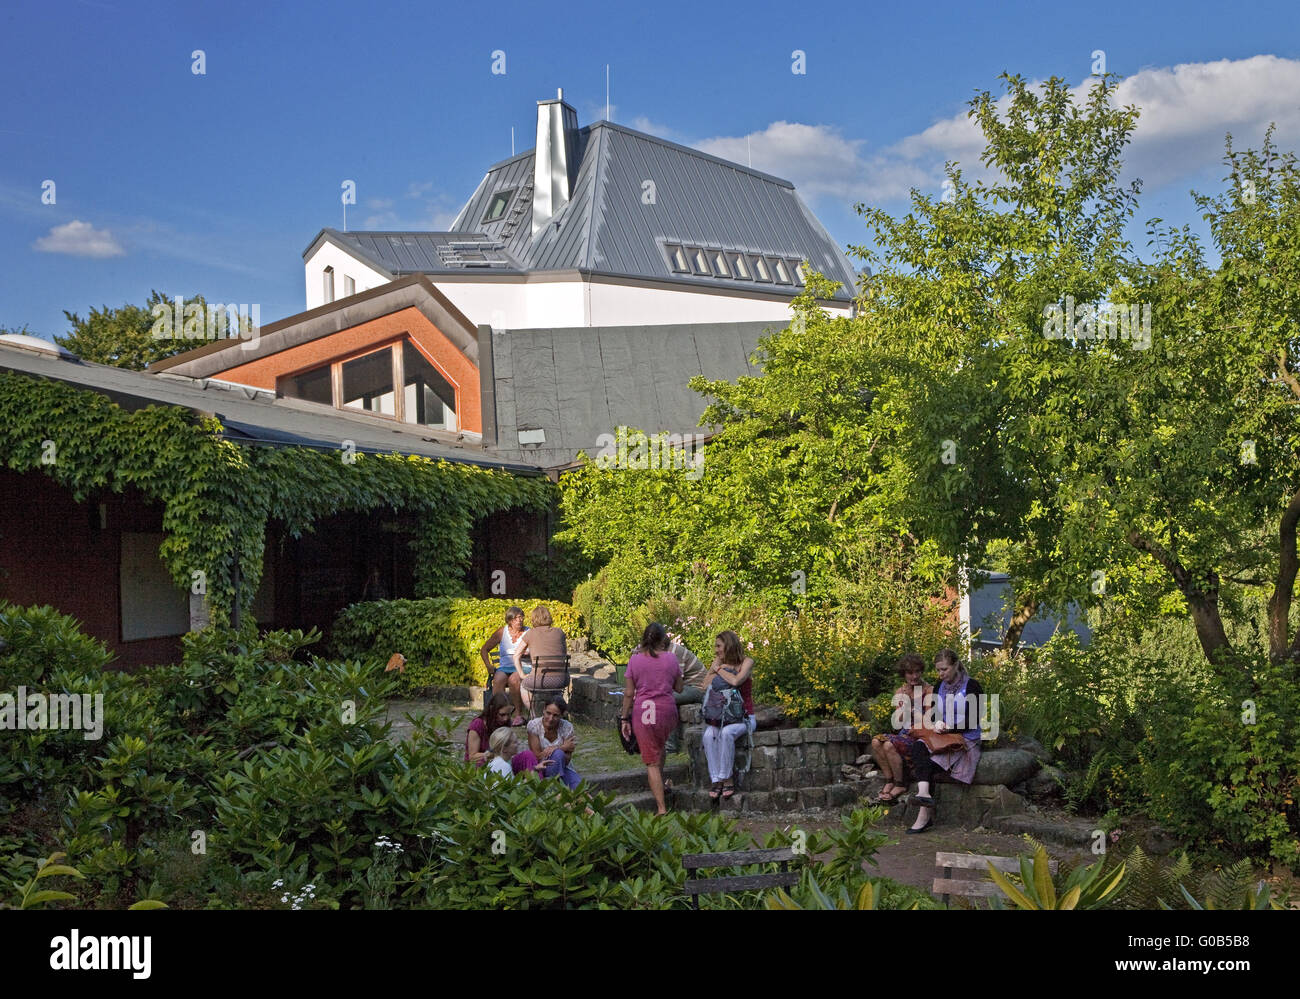 Institute for Waldorf Education Witten, Germany - Stock Image